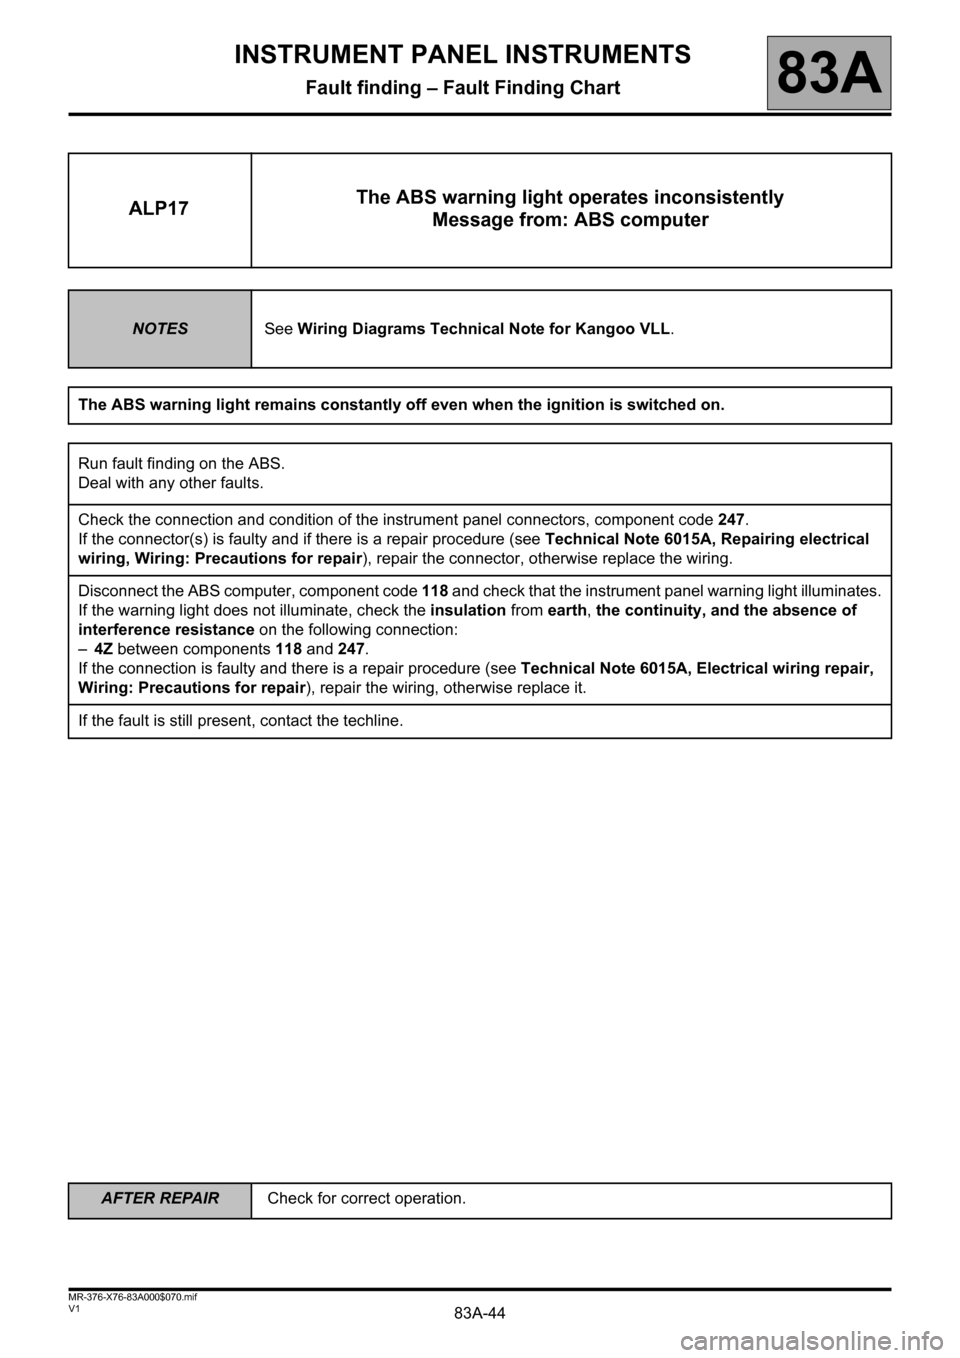 RENAULT KANGOO 2013 X61 / 2.G Instrument Panel Instruments Workshop Manual, Page 44